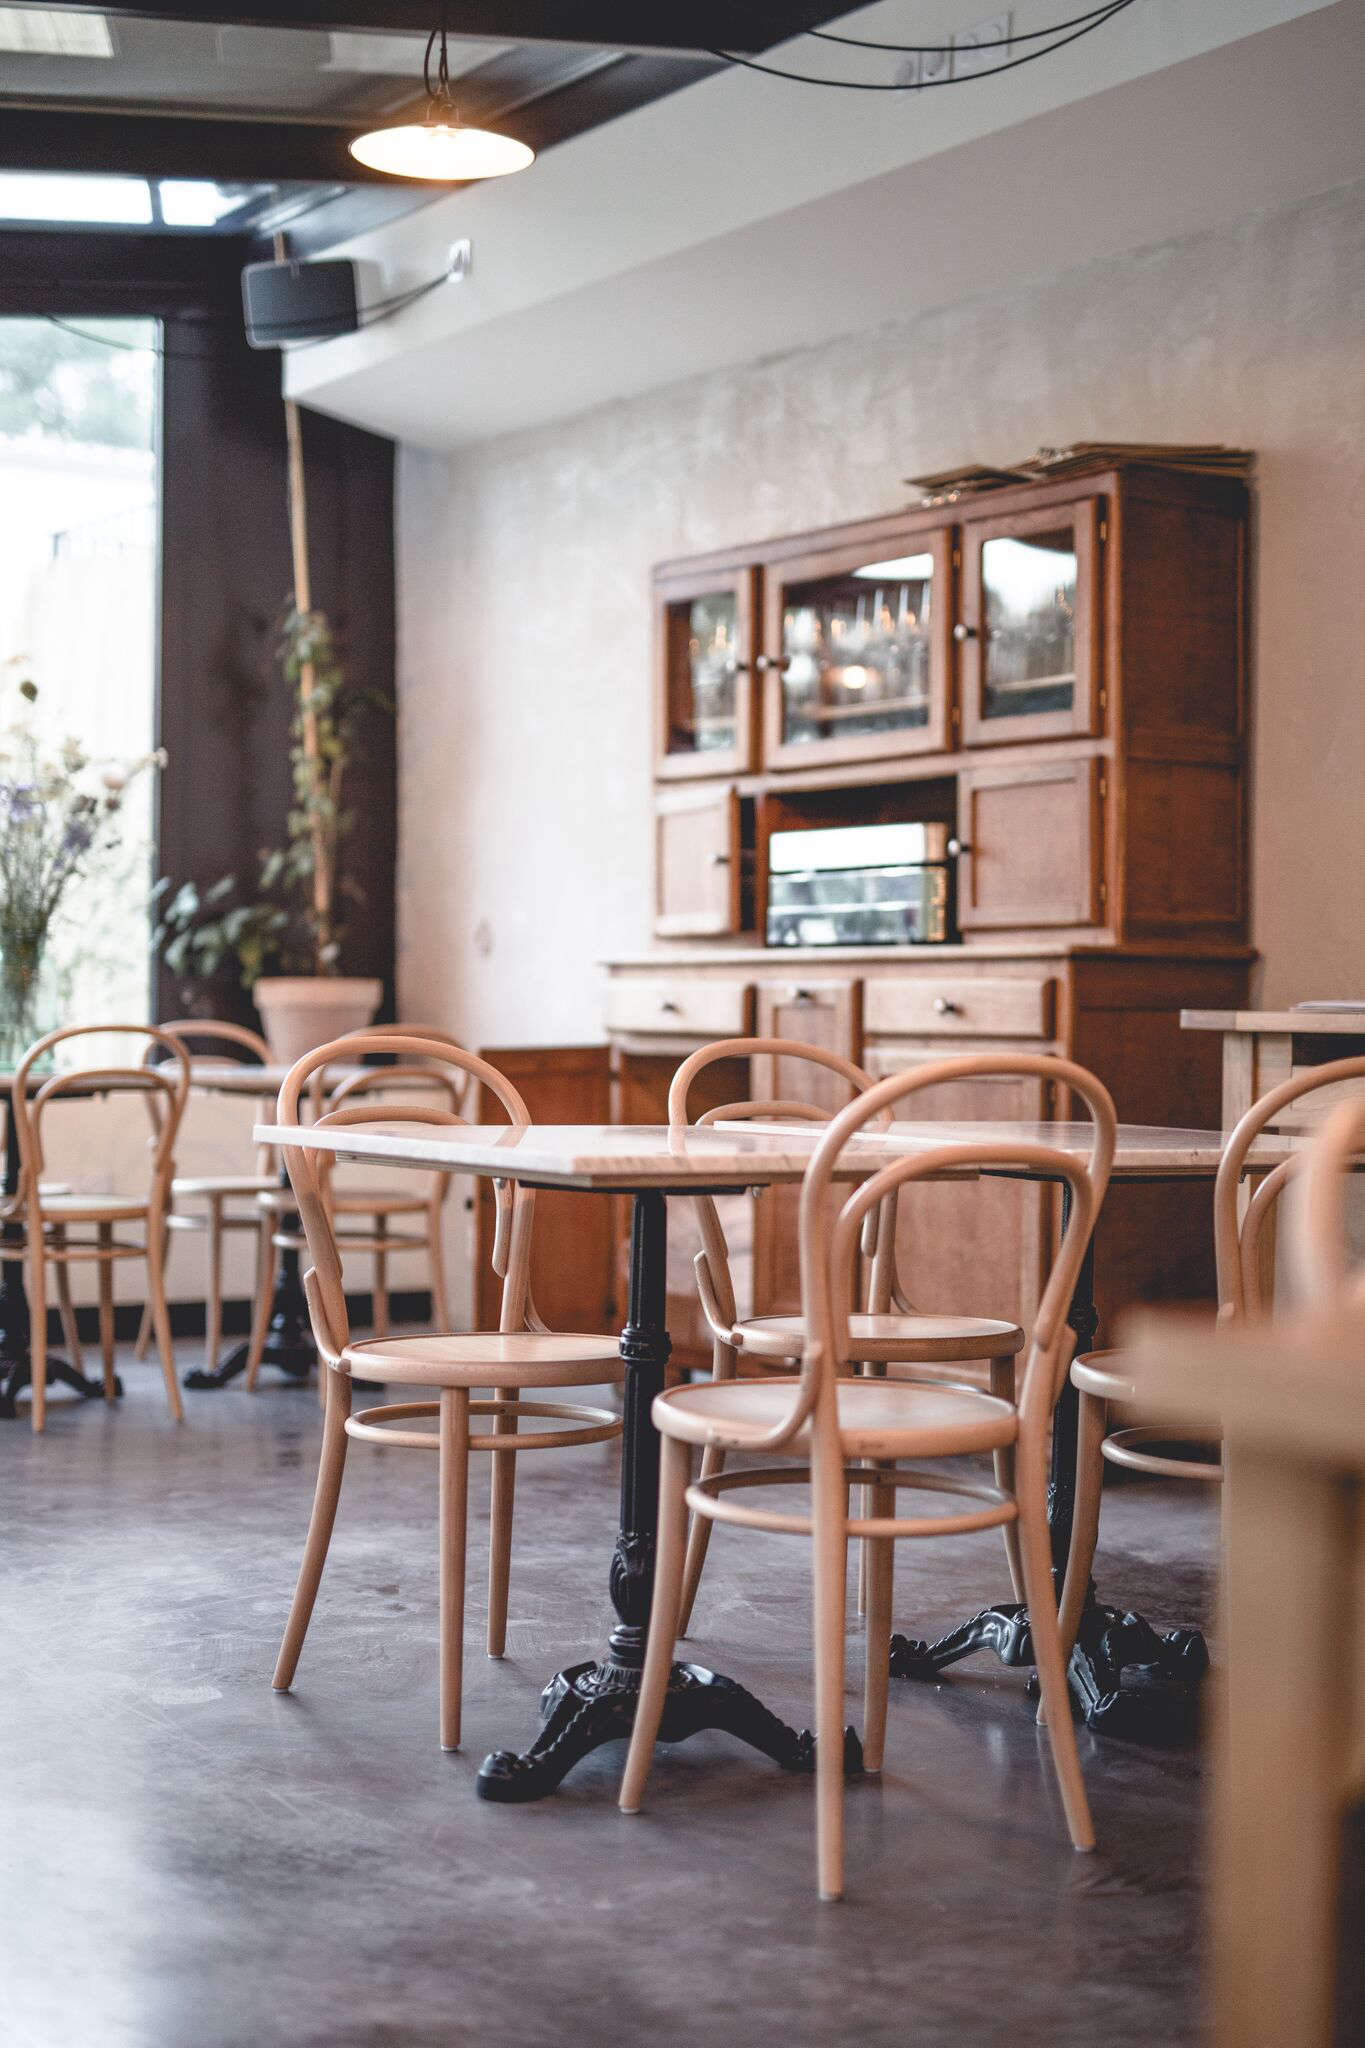 Thonet bentwoodEra Chairs(in a rarely seen natural finish) are mixed with marble-topped cafe tables and an antique sideboard.